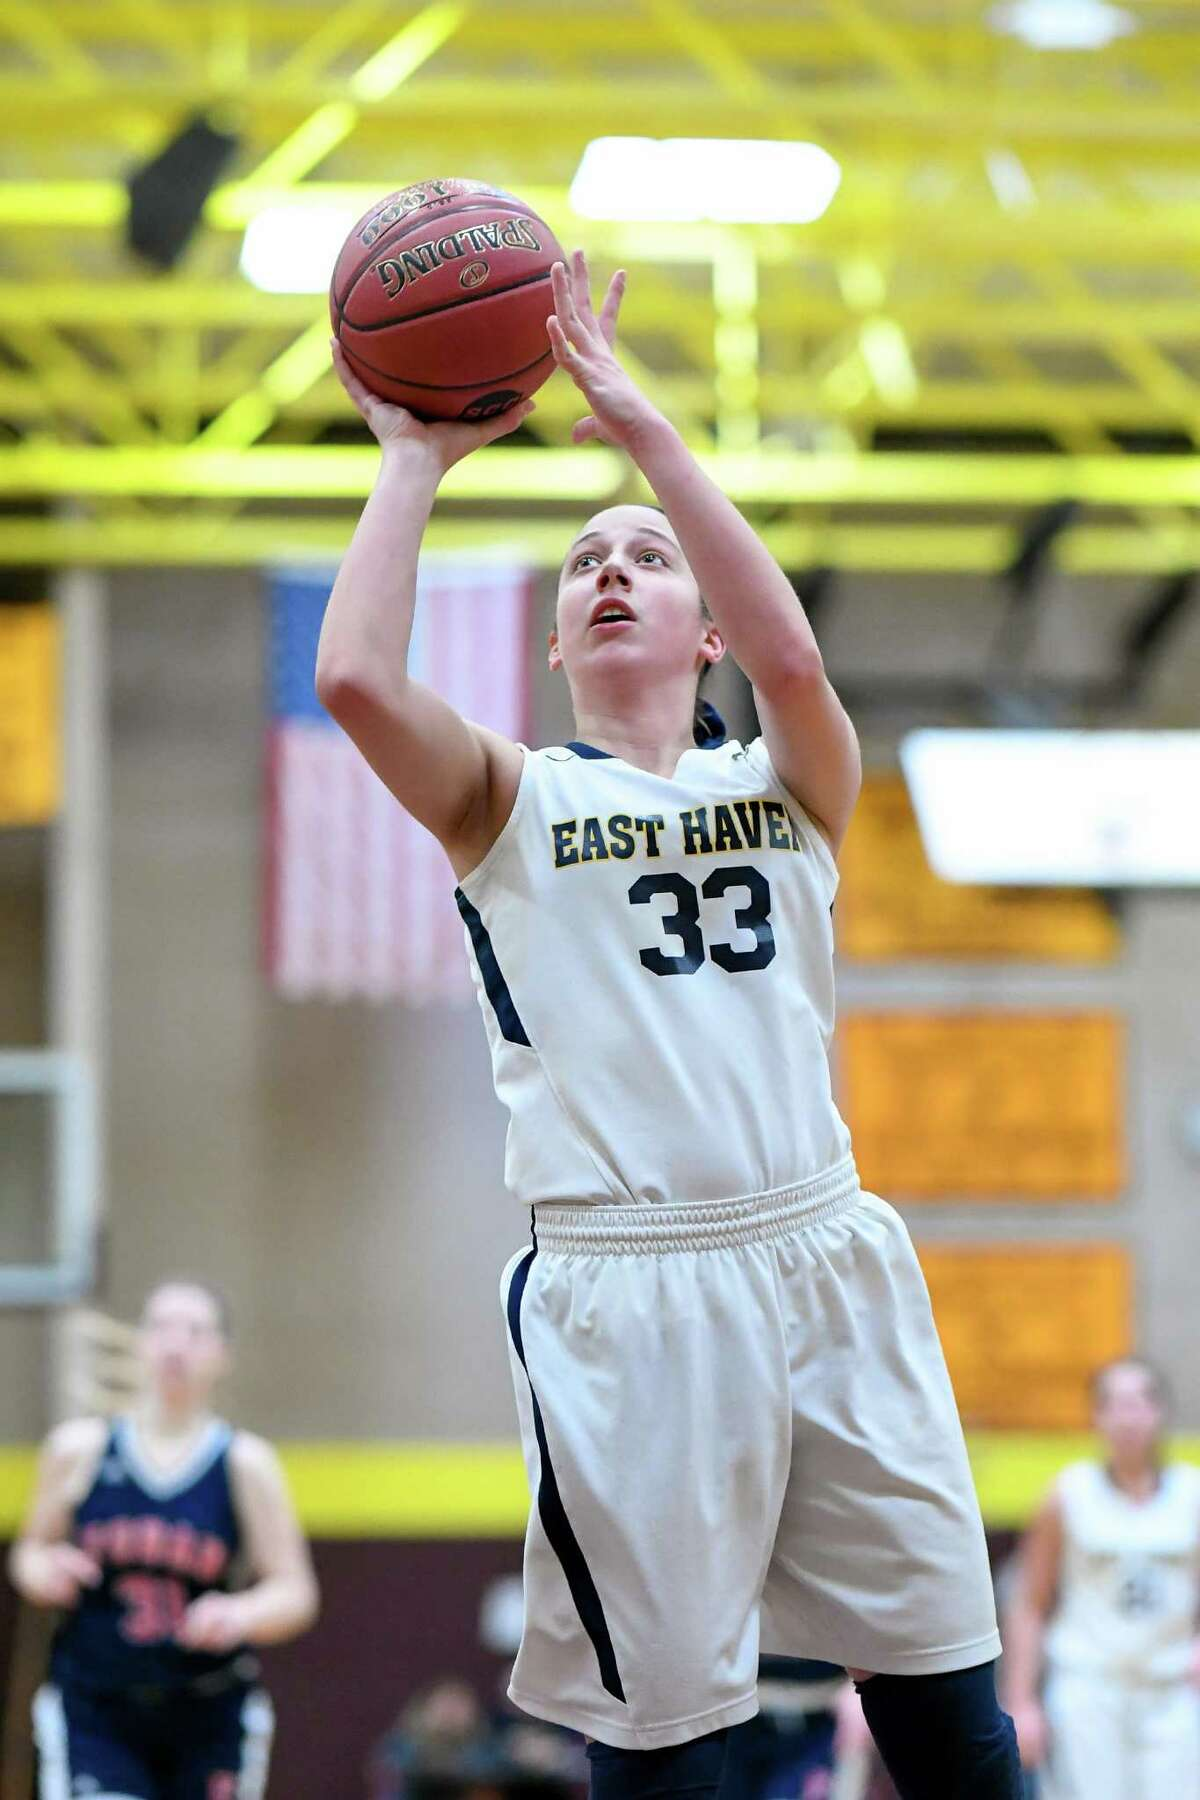 East Haven sophomore center Taylor Salato goes up for a shot on Saturday against Foran in the SCC girls basketball tournament quarterfinals.